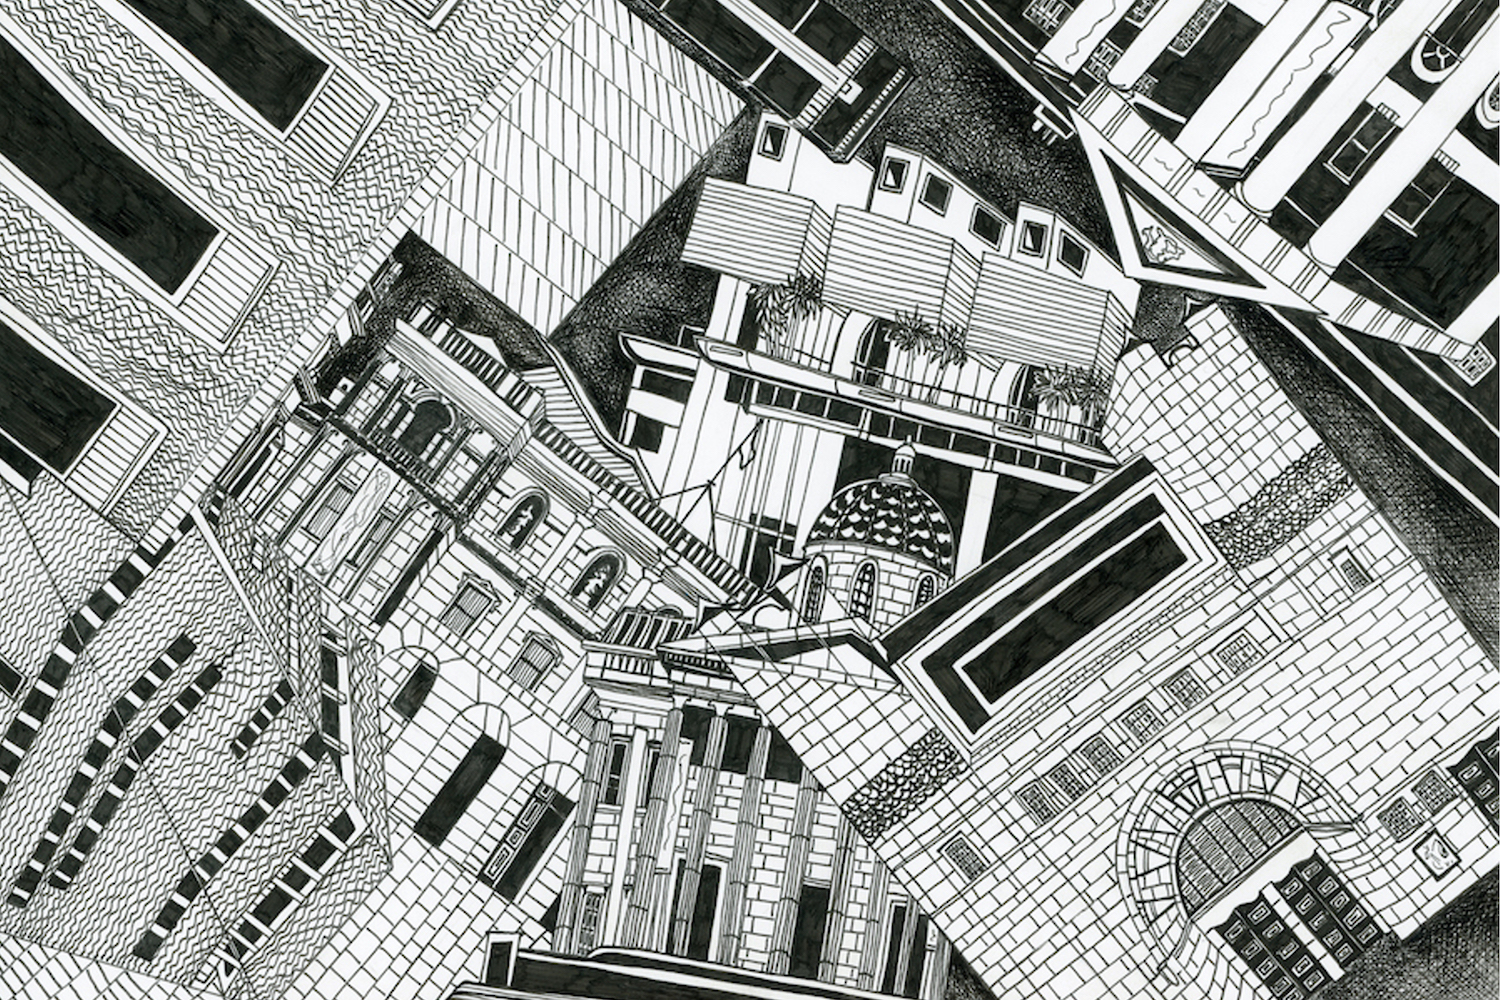 London art galleries drawing by Kirsty Riddell